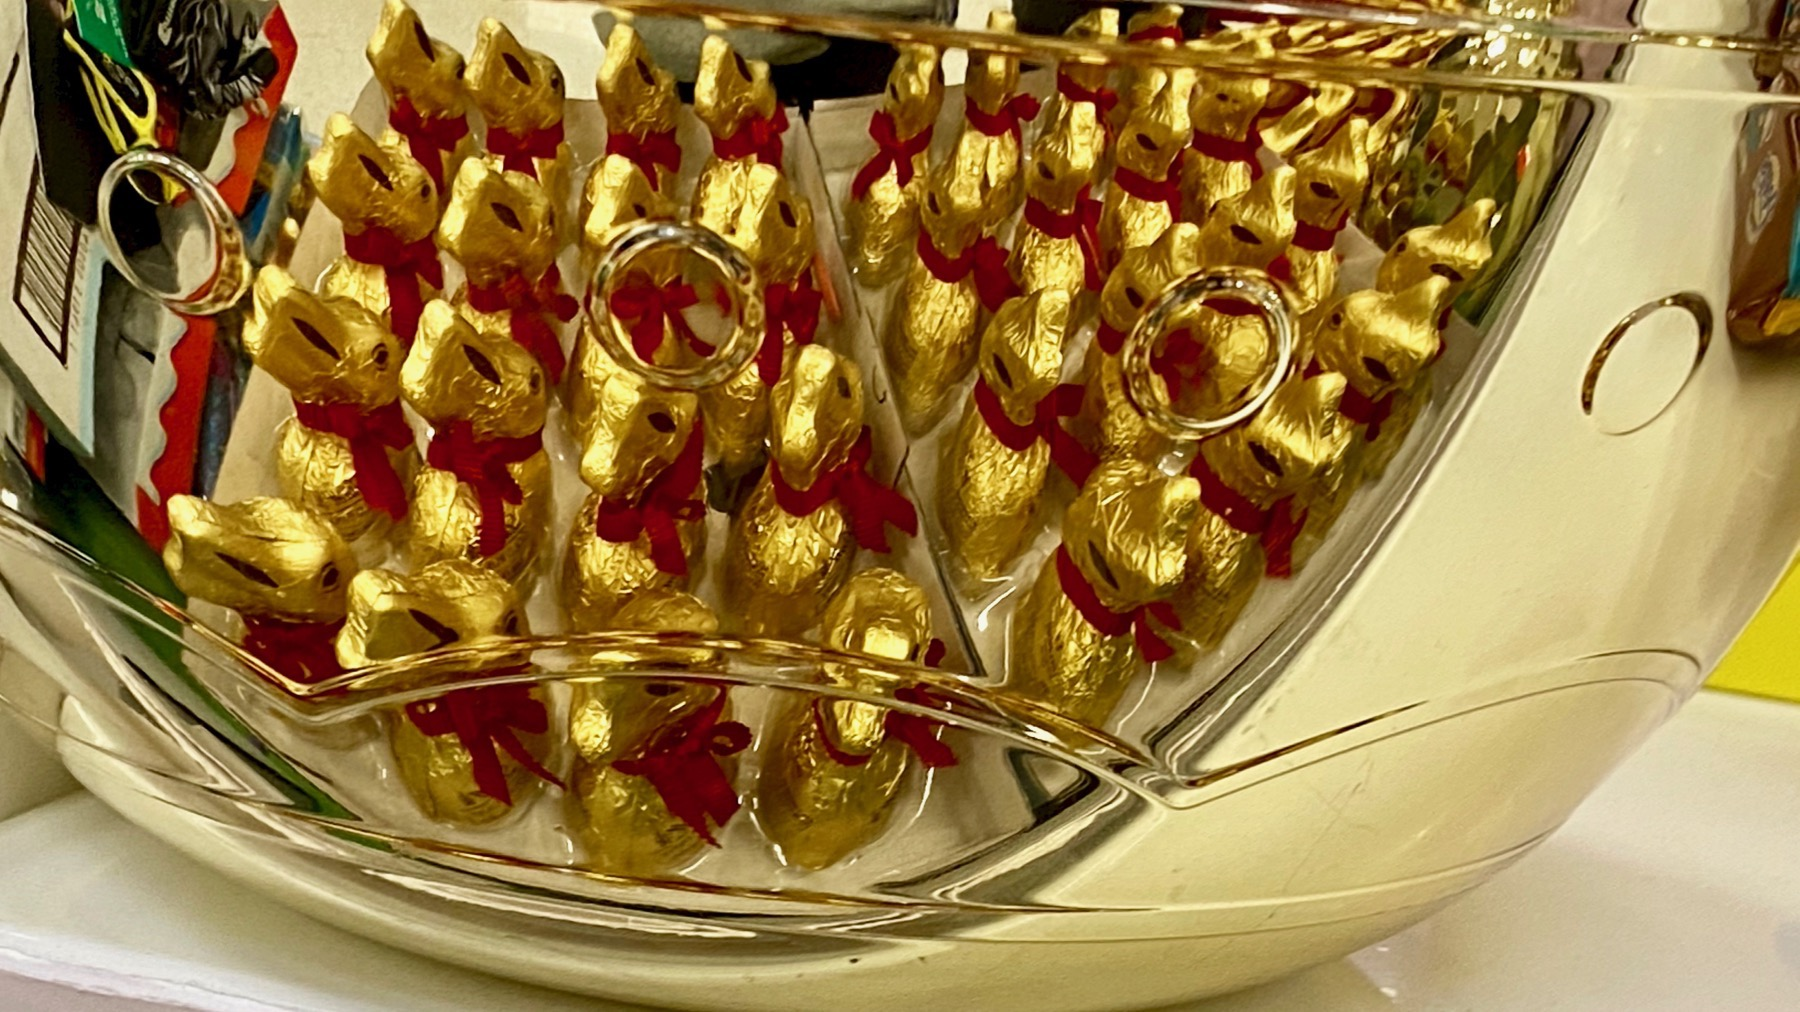 Choc bunnies reflected